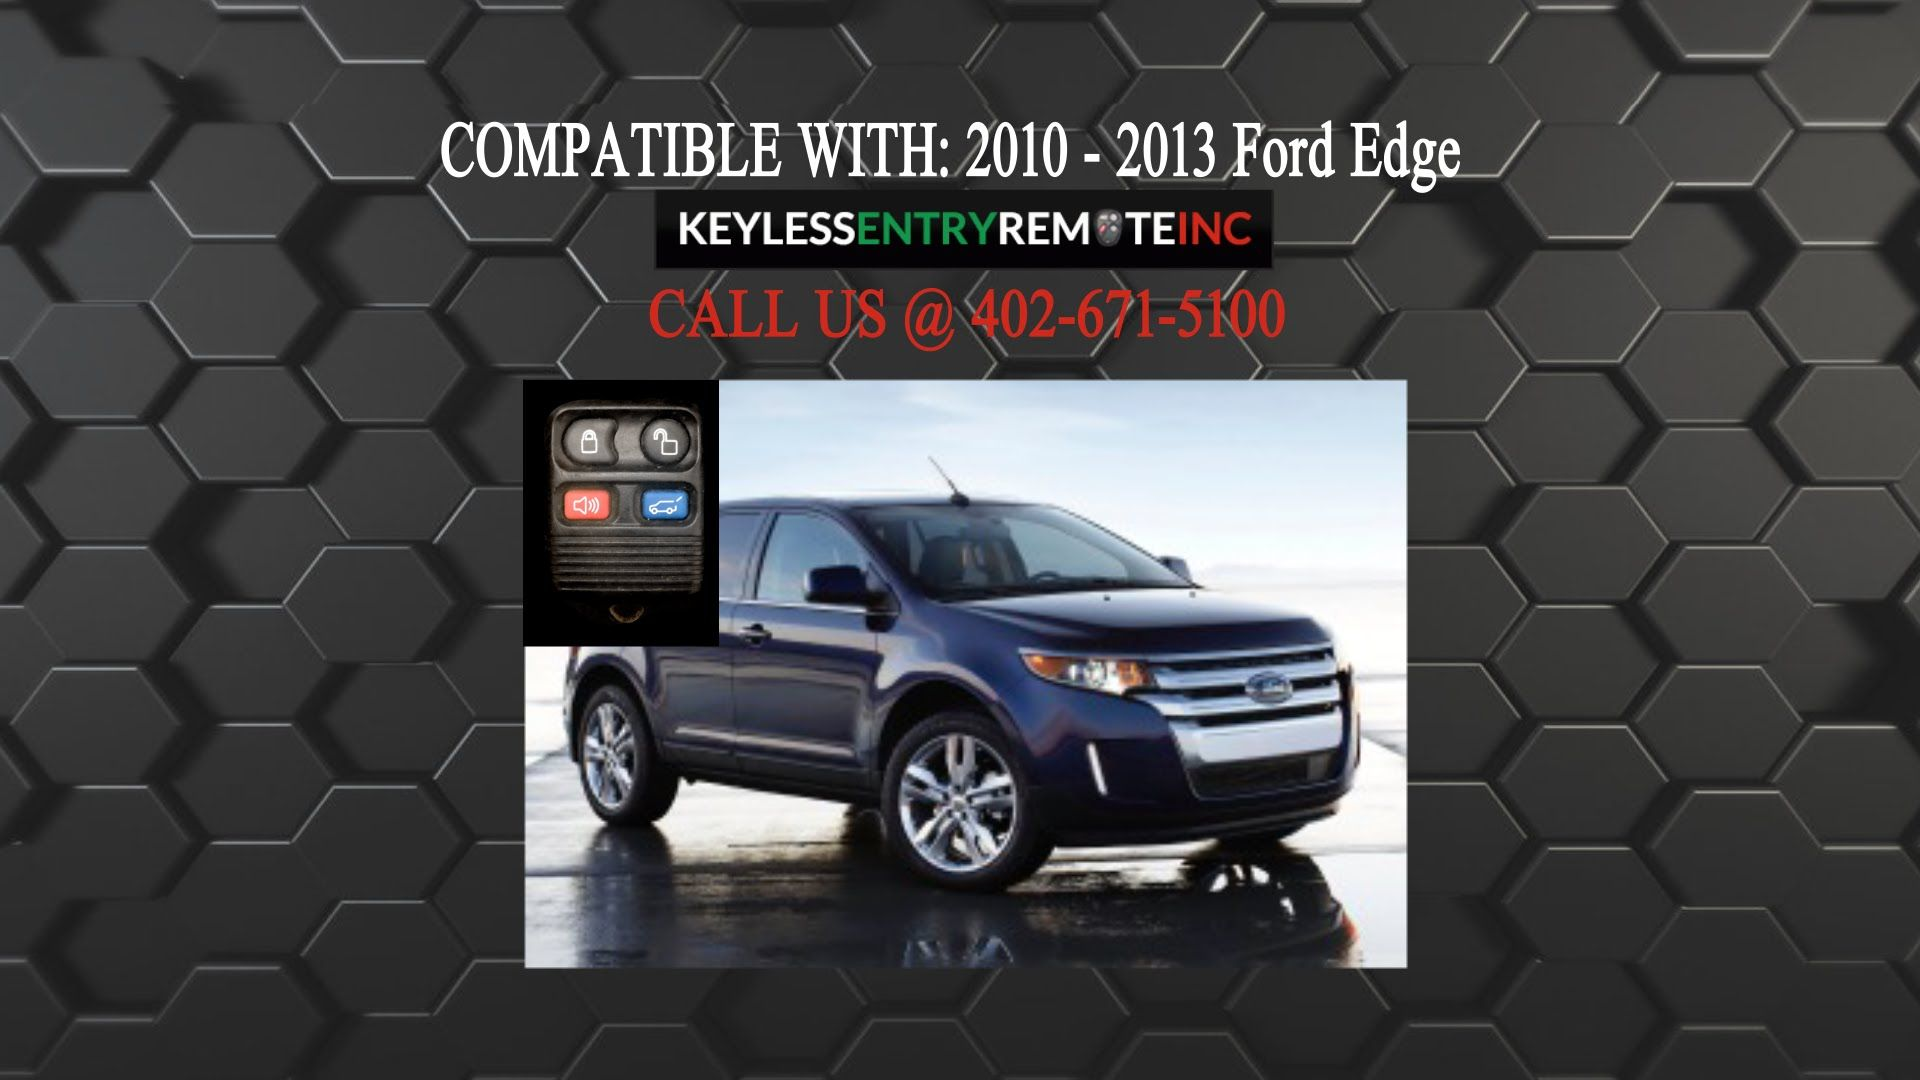 How To Replace Ford Edge Key Fob Battery 2007 2014 Ford Edge Key Fob Fobs